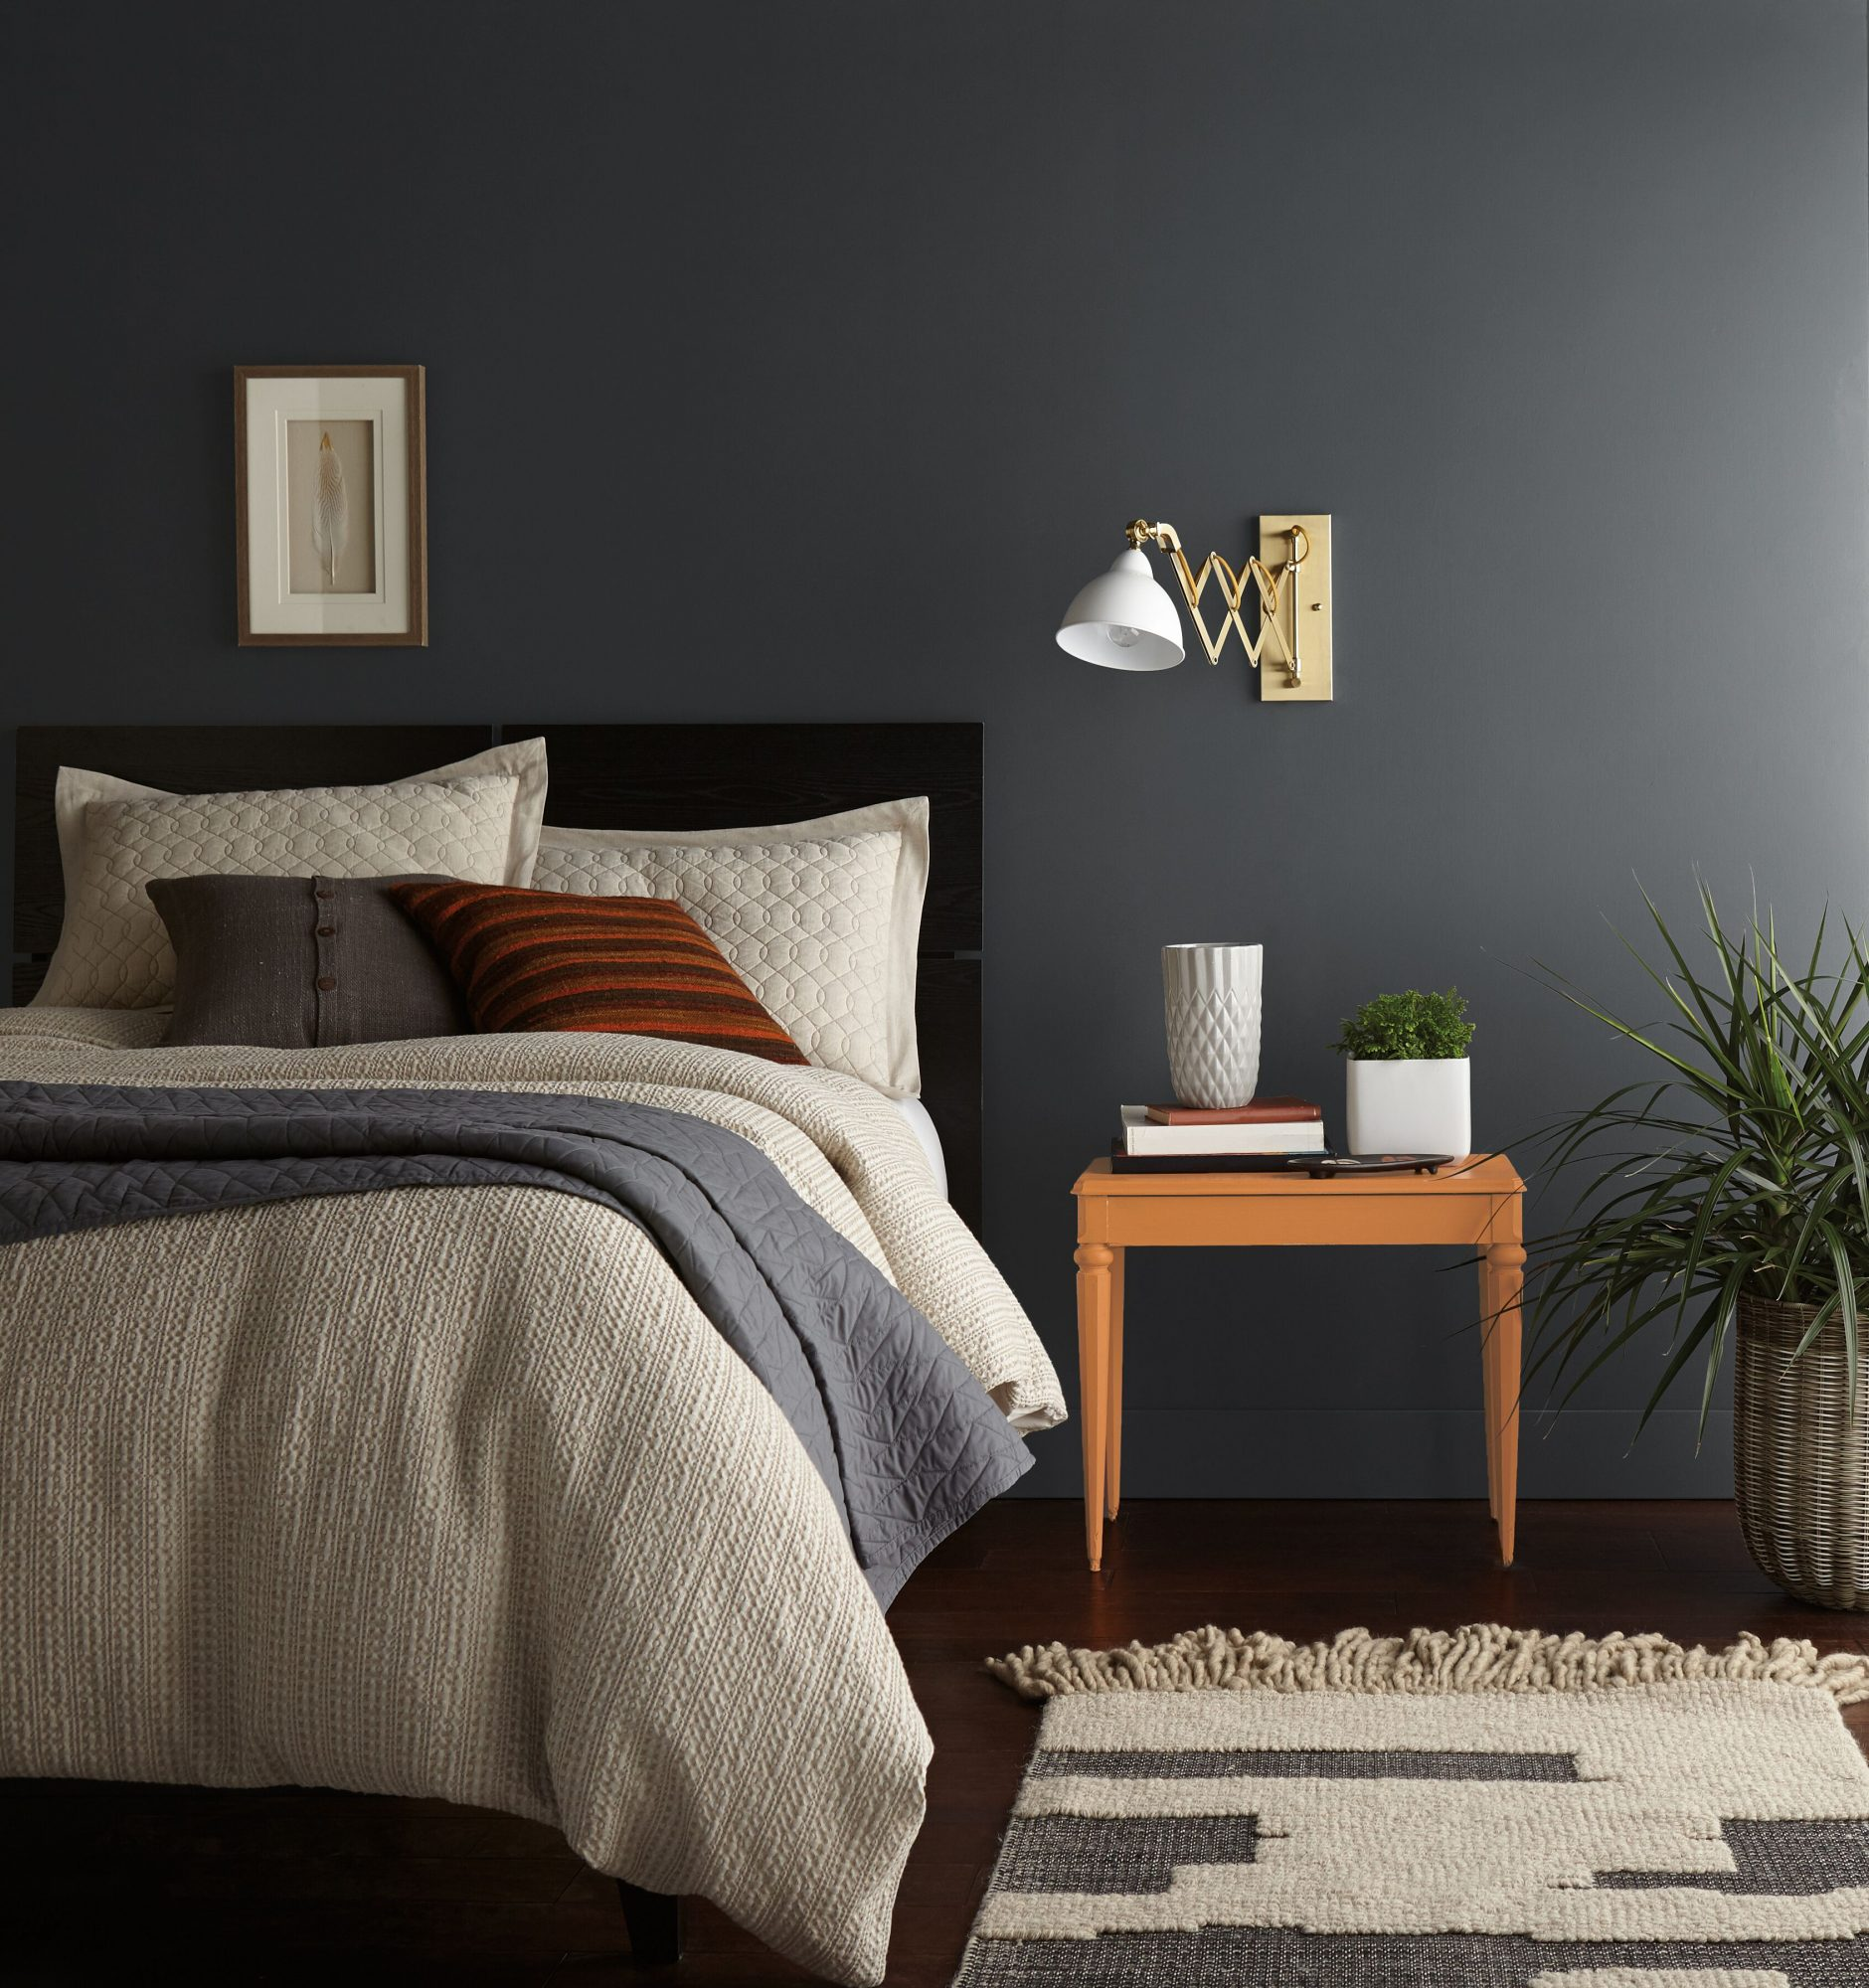 Best Paint Match: Courteous (S560-1) Not only does the name of this shade suit its people-pleasing counterpart, its lilac undertones also happen to be perfect for warm-hearted Helper types. Twos are at their best in the company of others, but can feel str